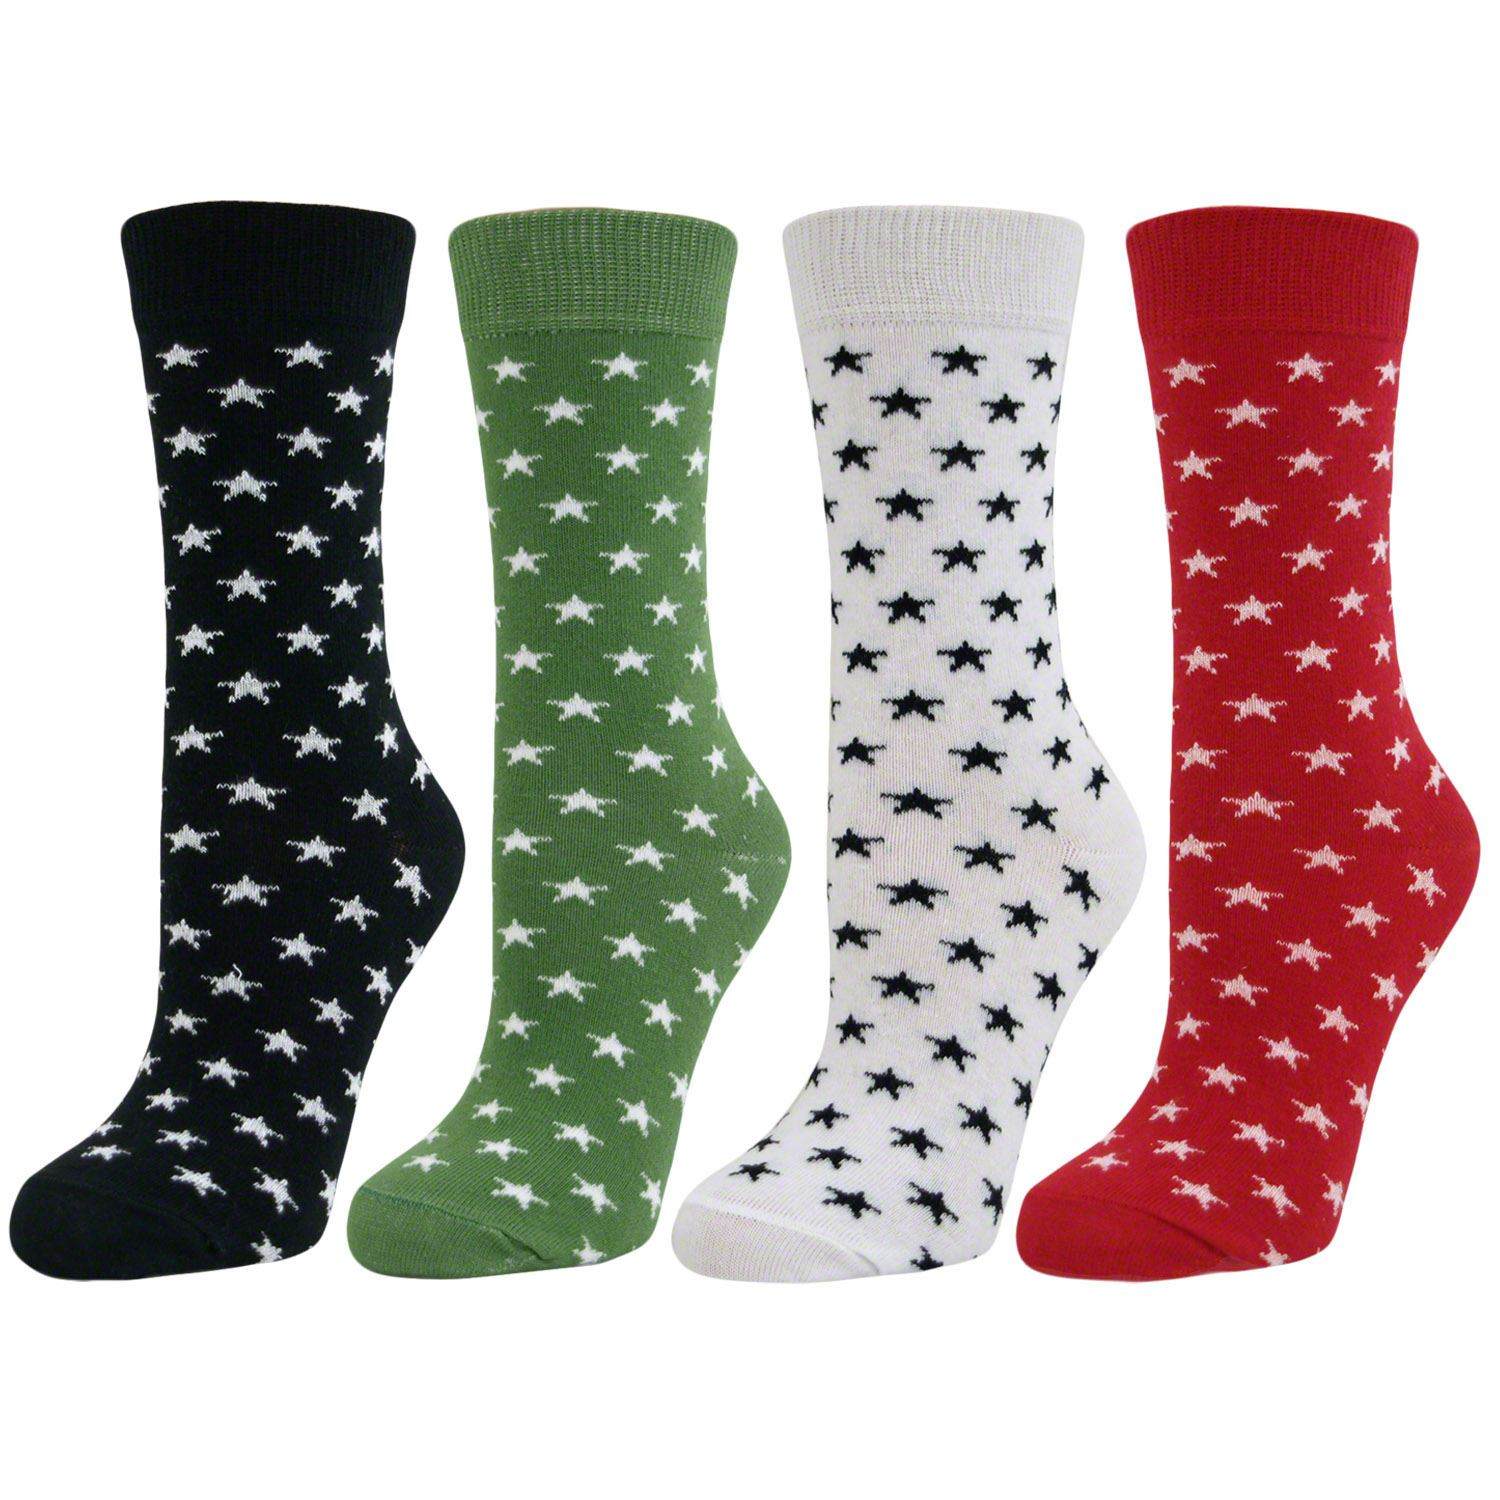 4 Pairs Womens Ladies Girls Star Pattern Mid Calf Ankle Crew Short Socks New